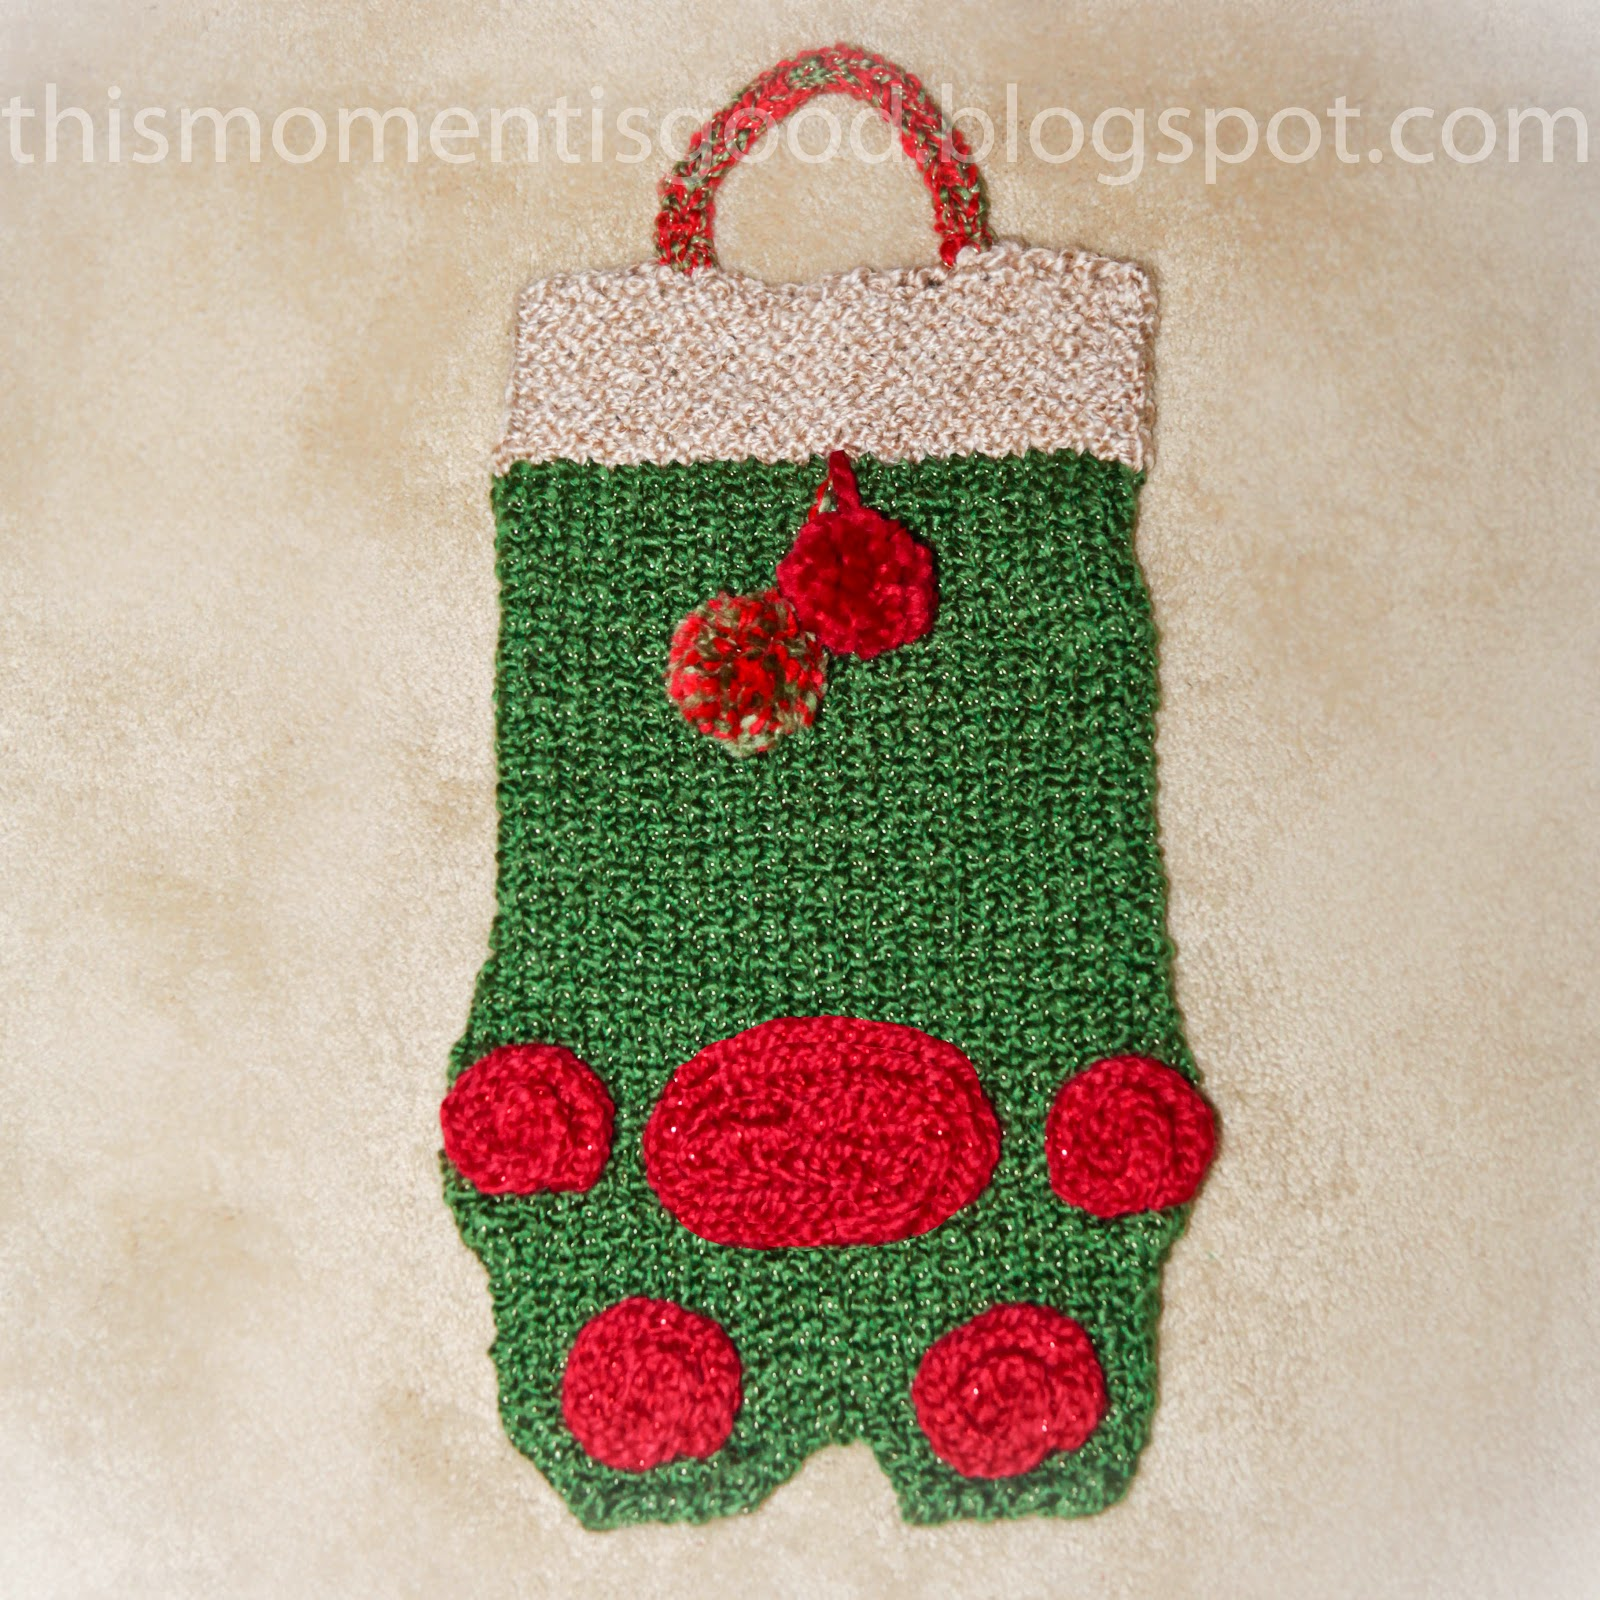 LOOM KNIT PET STOCKING PATTERN... | Loom Knitting by This Moment is ...